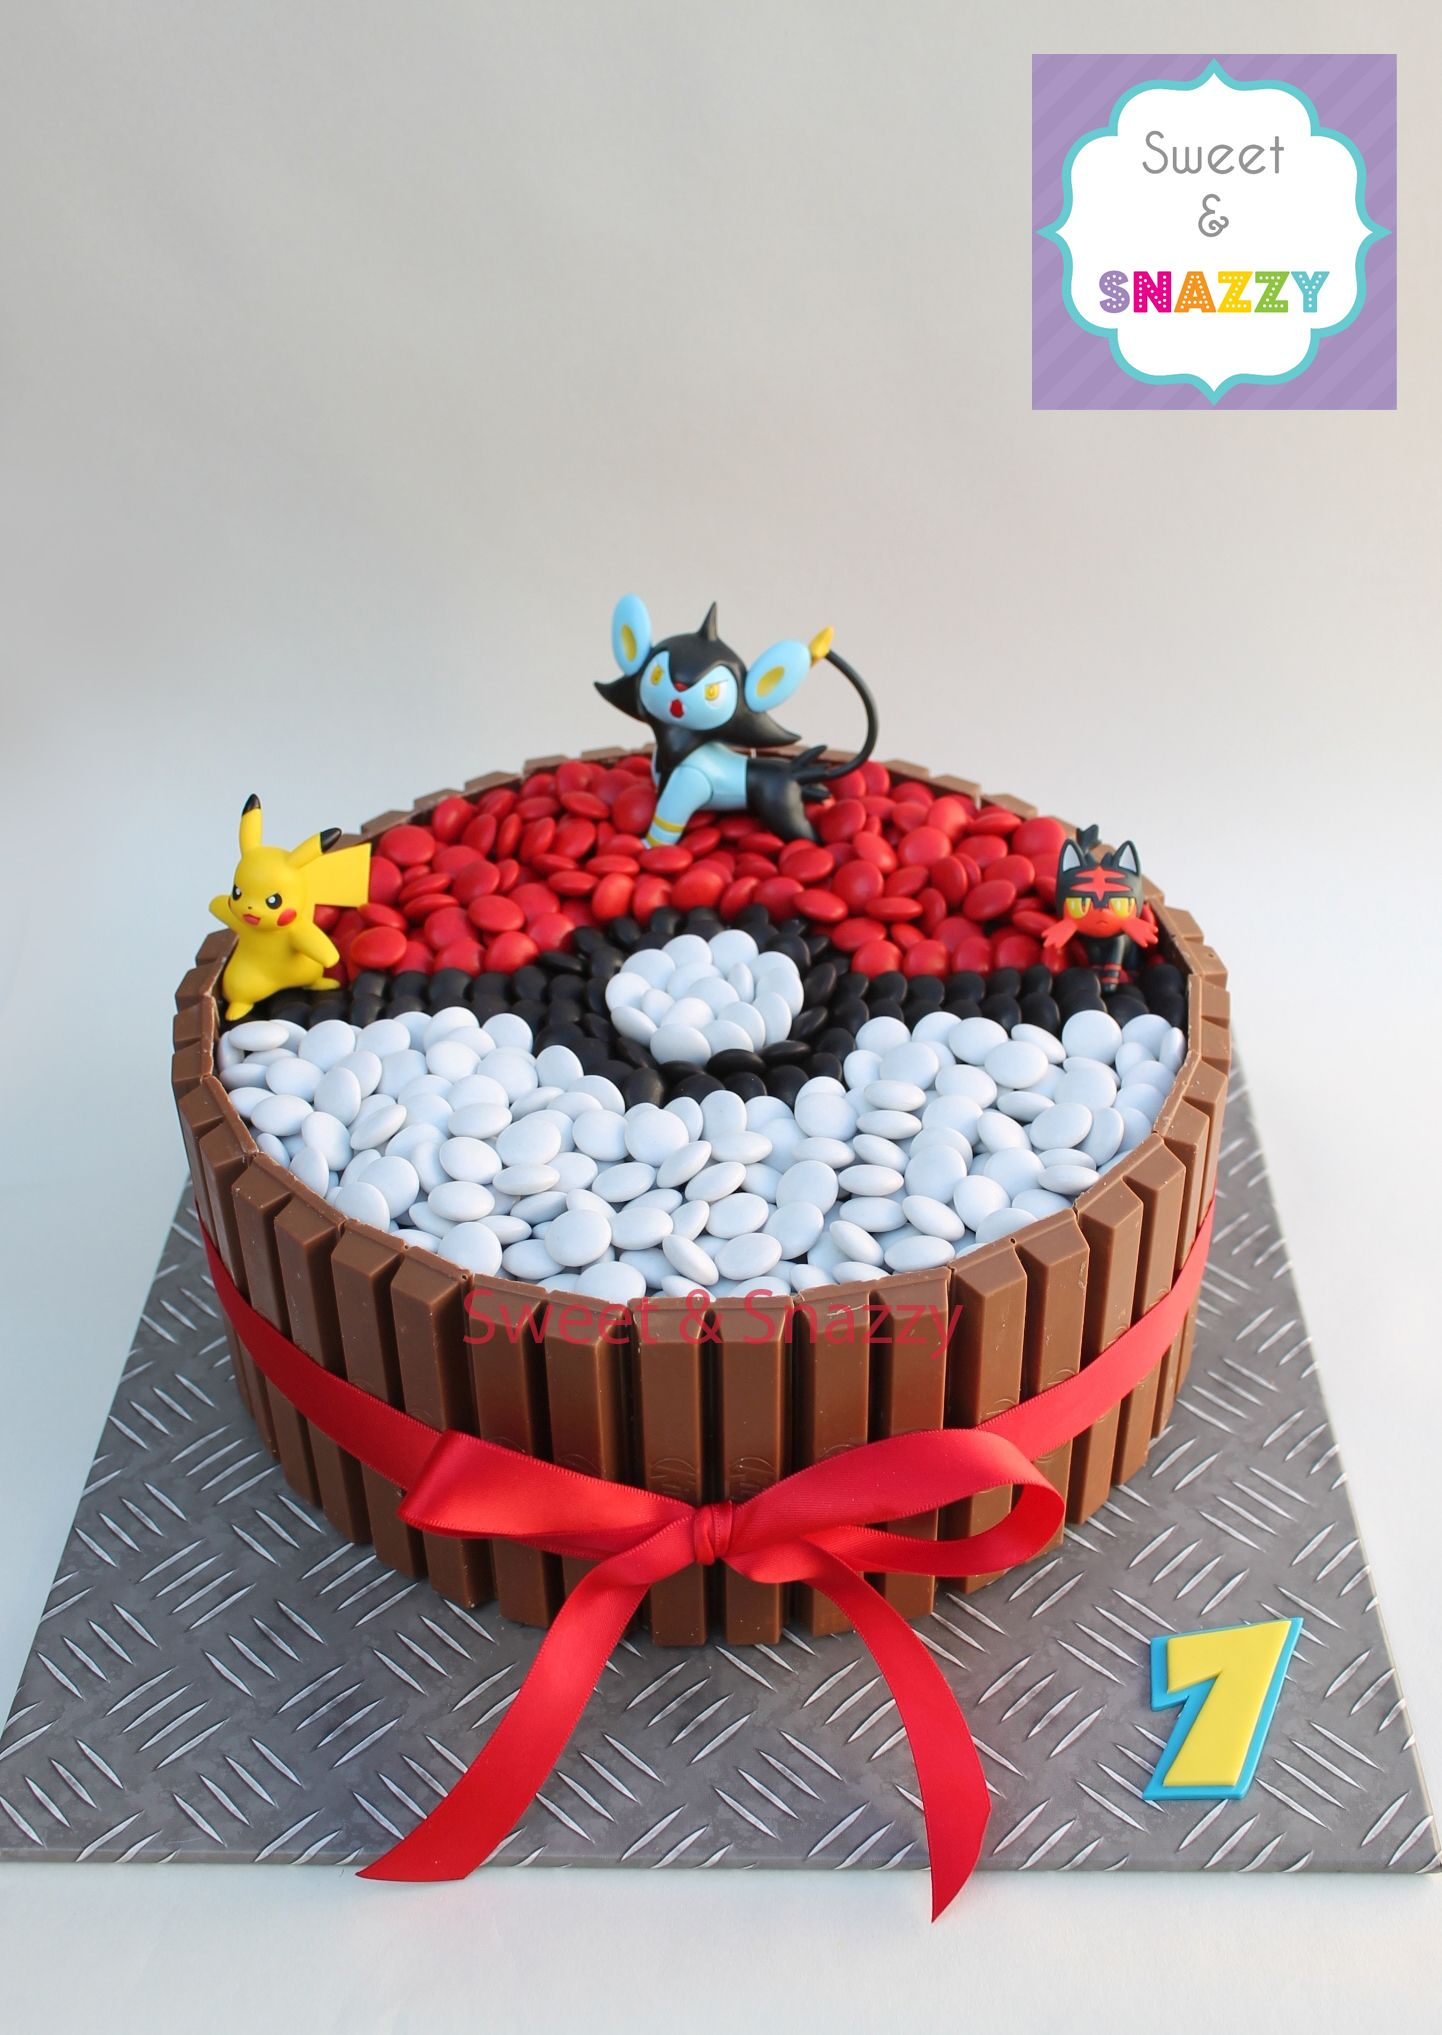 Pin by Sweet & Snazzy on Cakes in 2019   Pokemon birthday ...